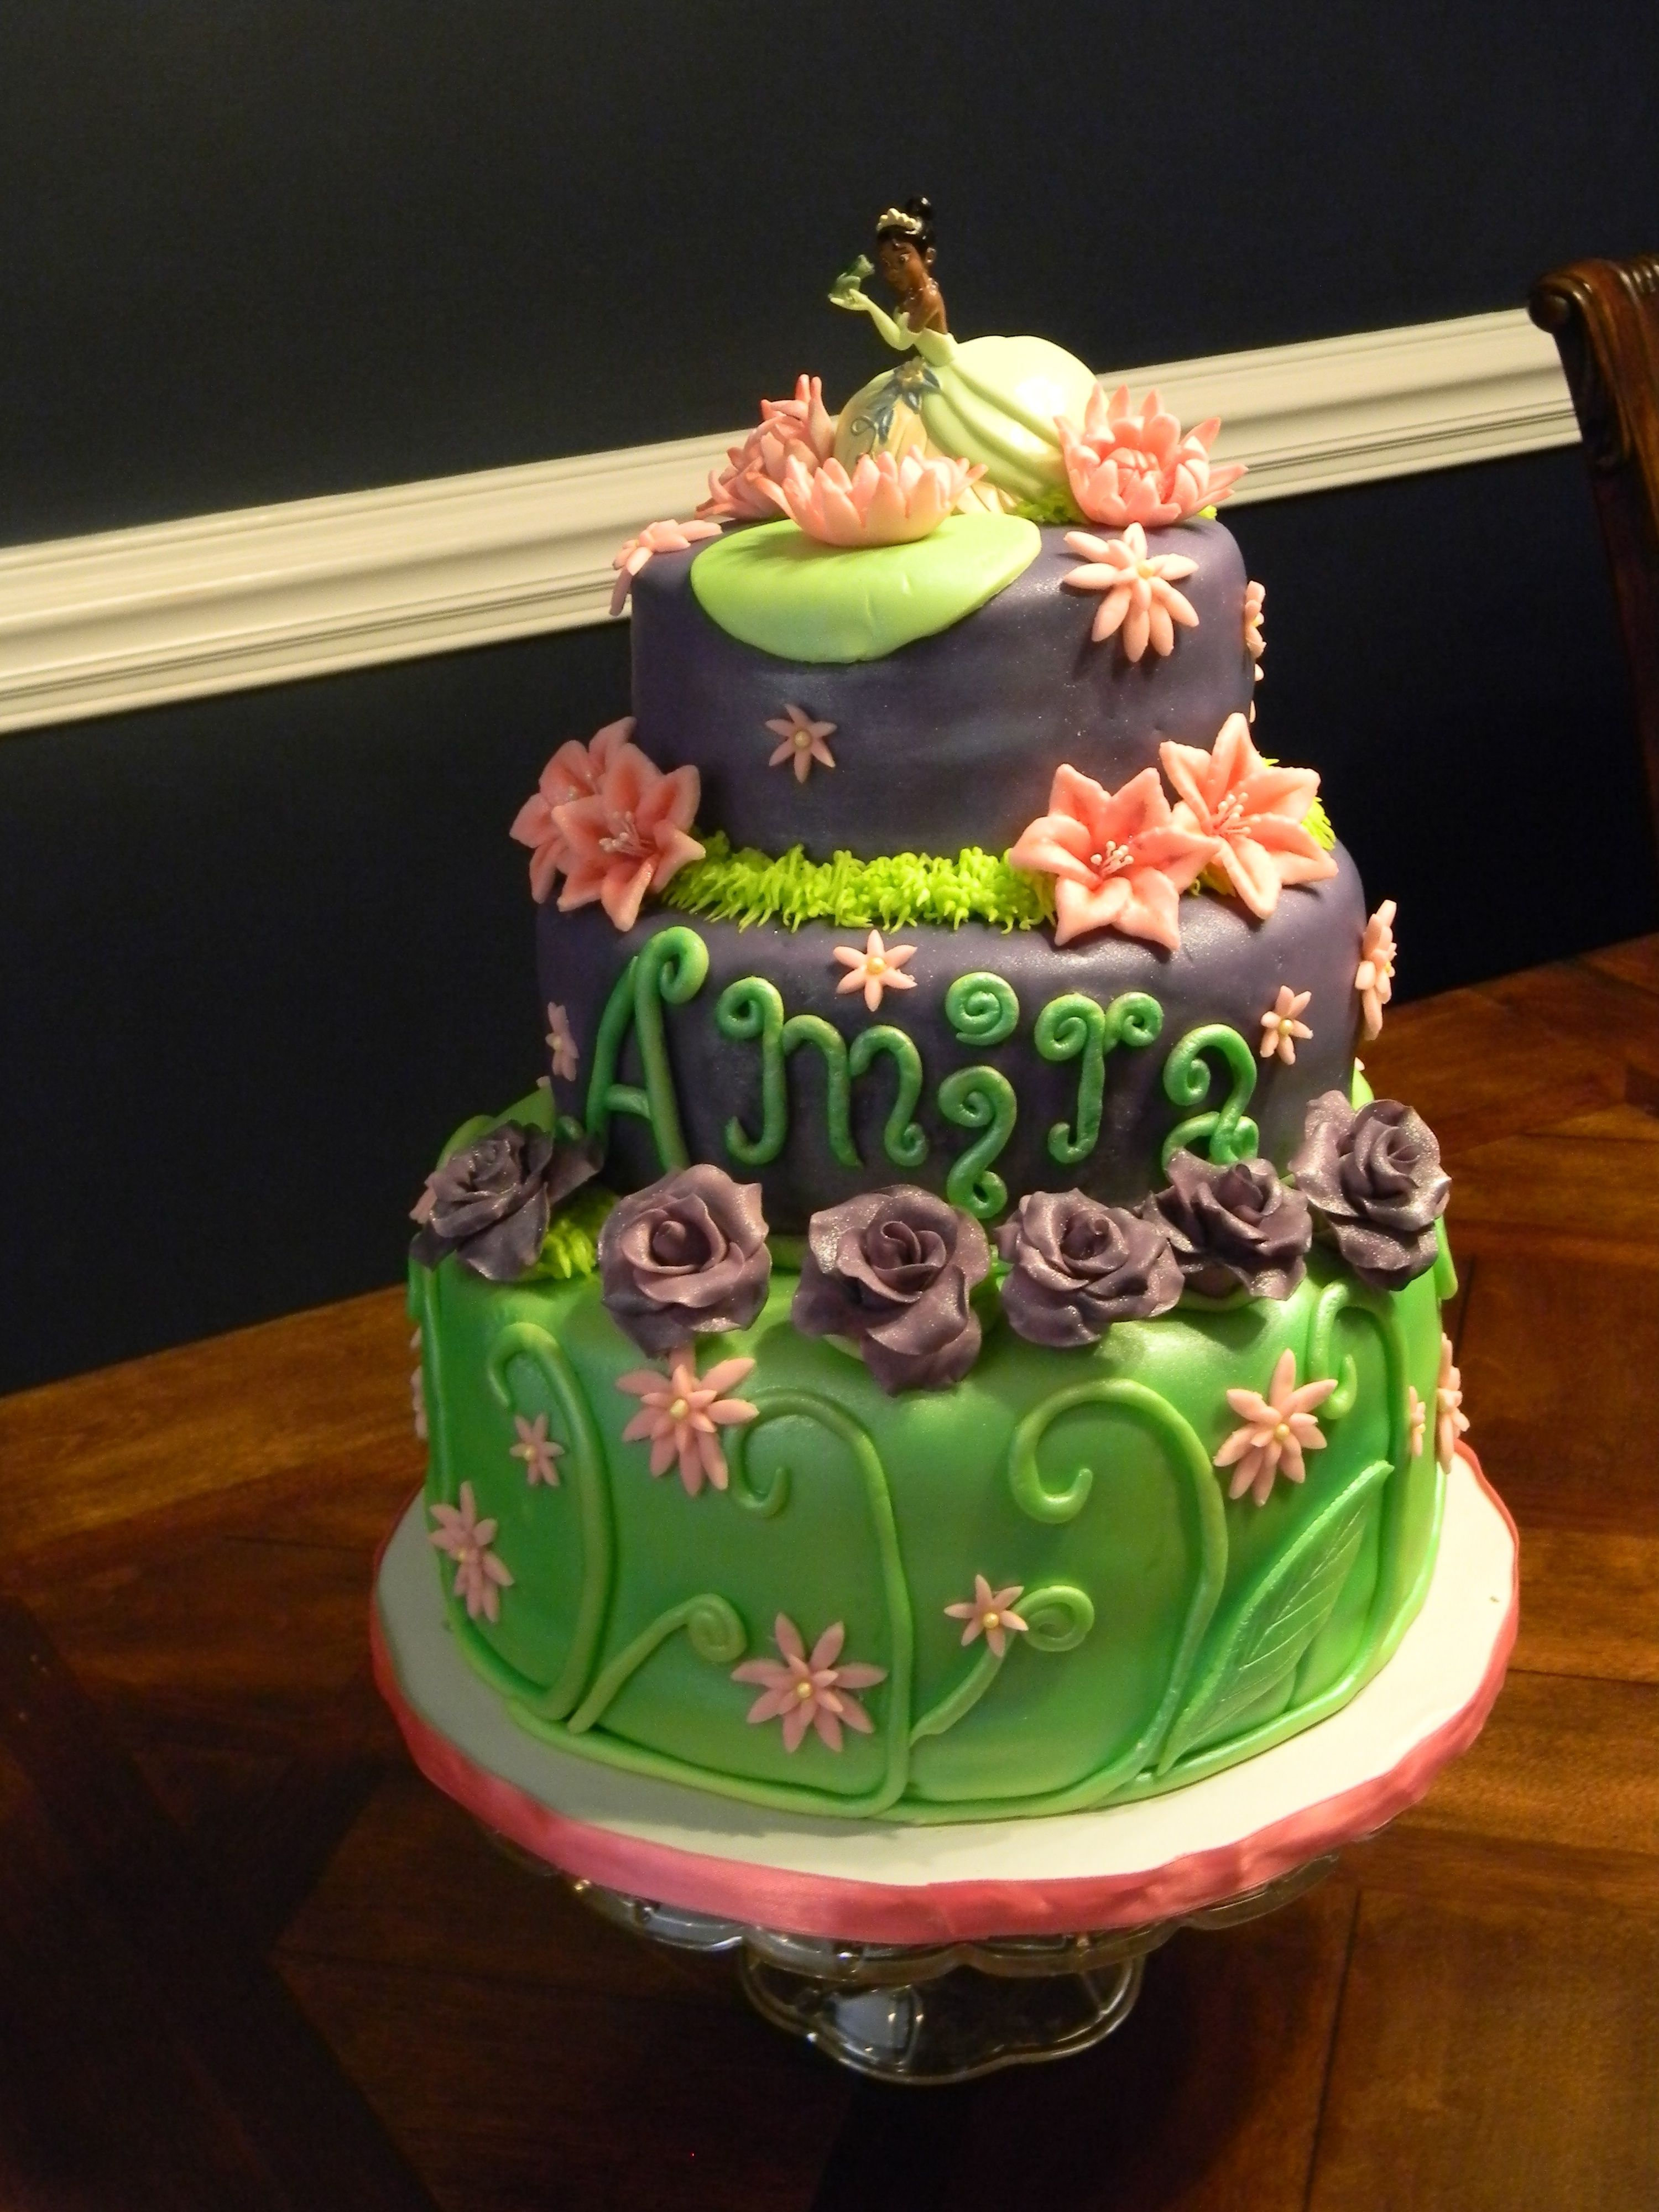 Princess Tiana Cake French Vanilla Sour Cream With Buttercream Hand Made Fondant Flowers And Decor All Is Homemade Yum